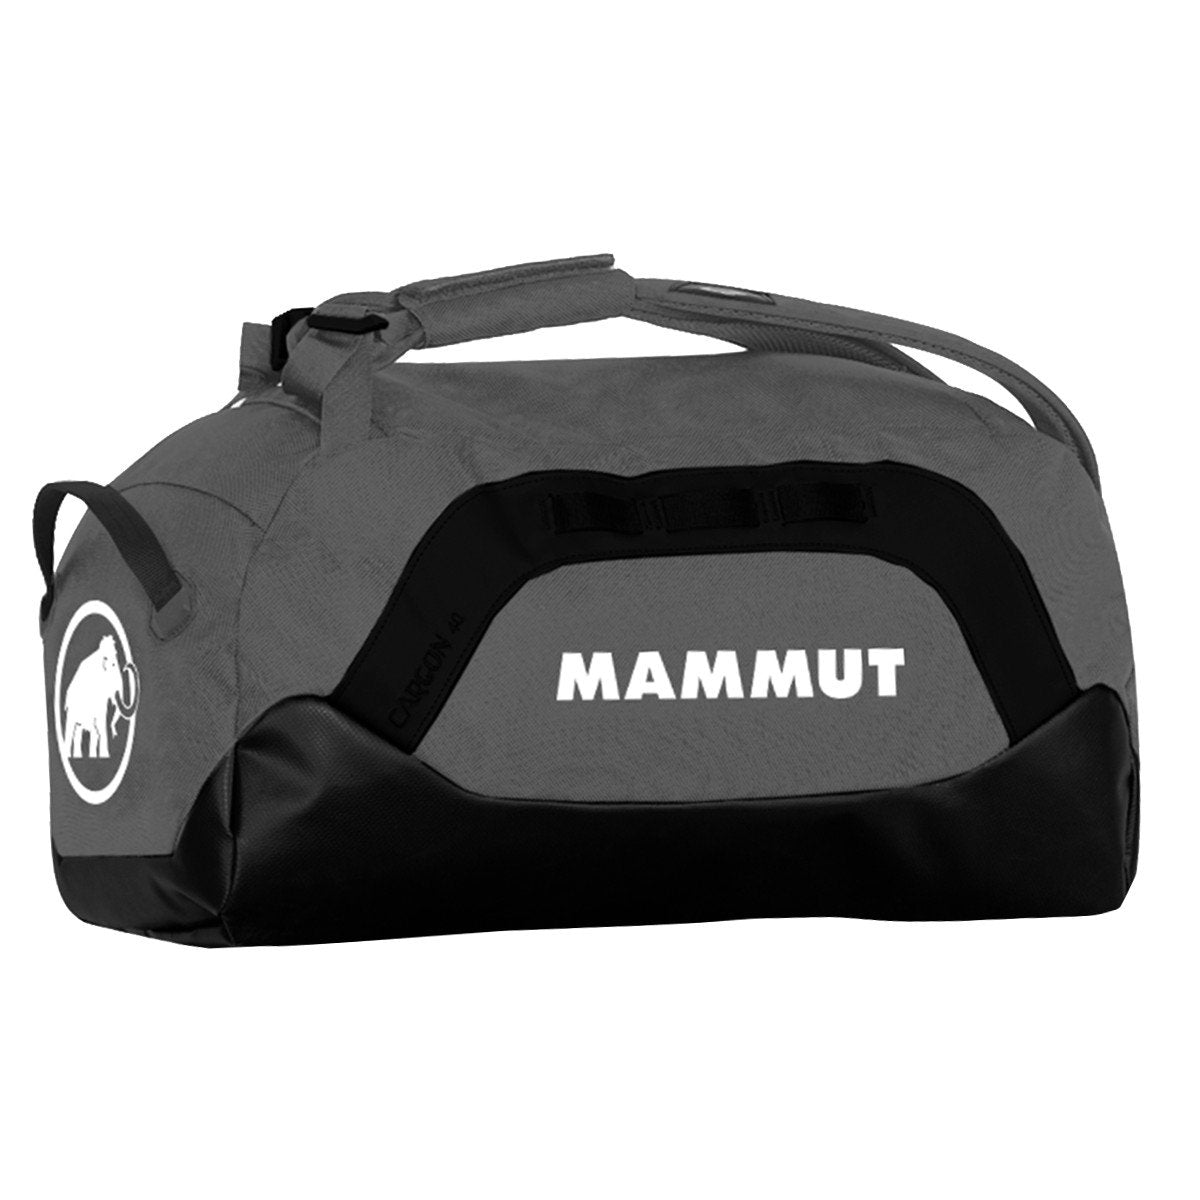 Mammut Cargon Holdall 40L, shown in holdall carry mode, in grey/black colours